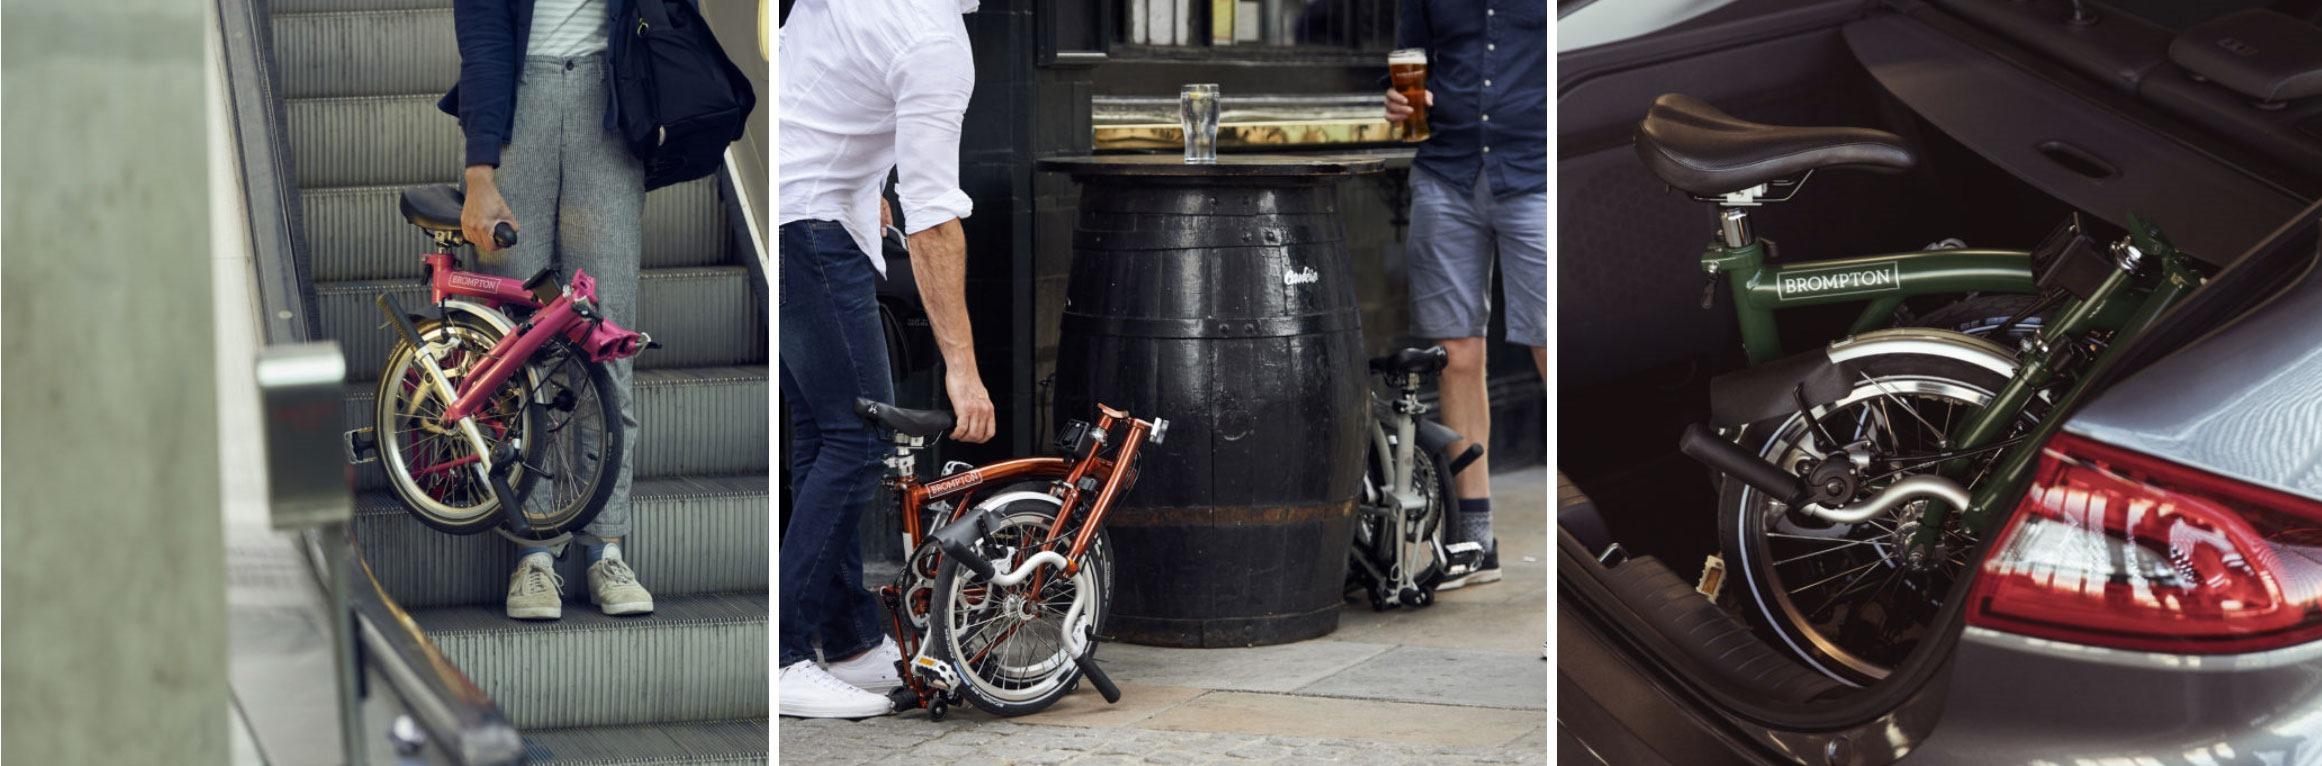 brompton-page-images-1